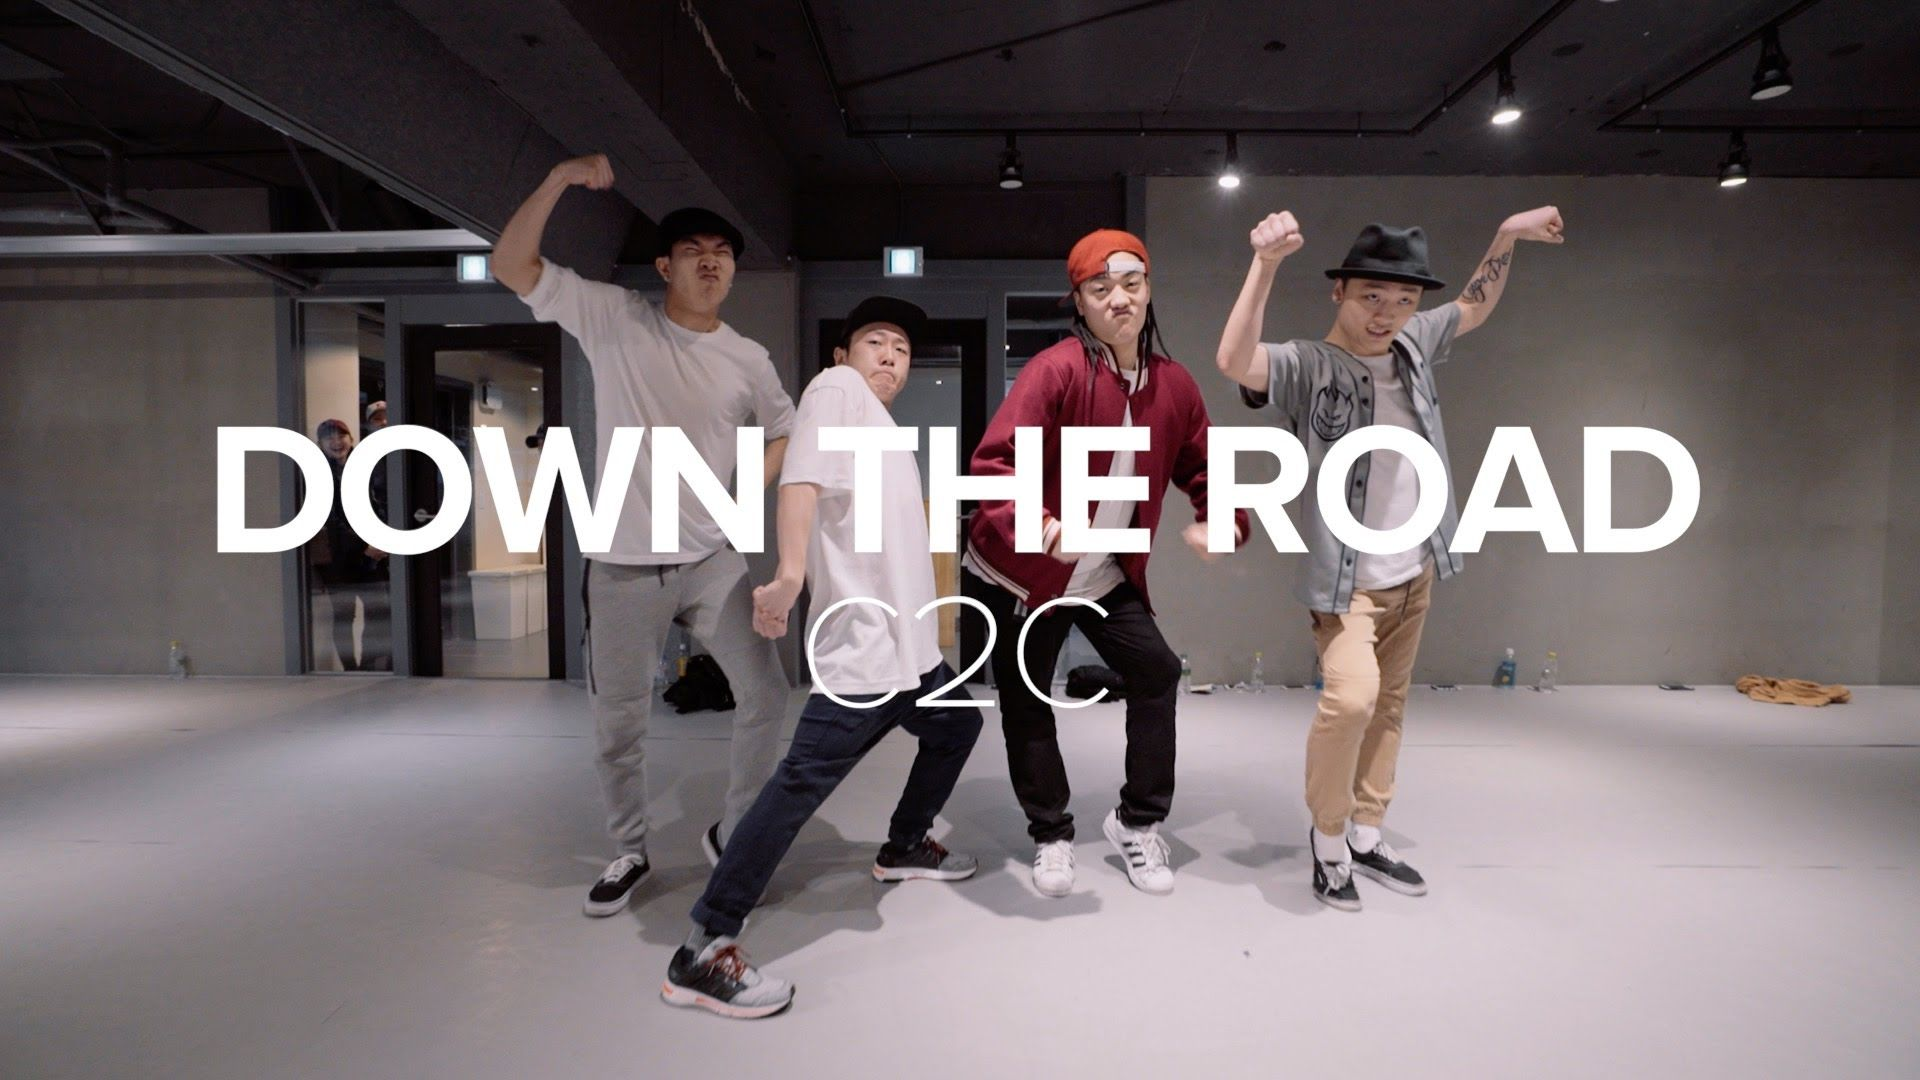 Down The Road C2c Assall Crew Choreography